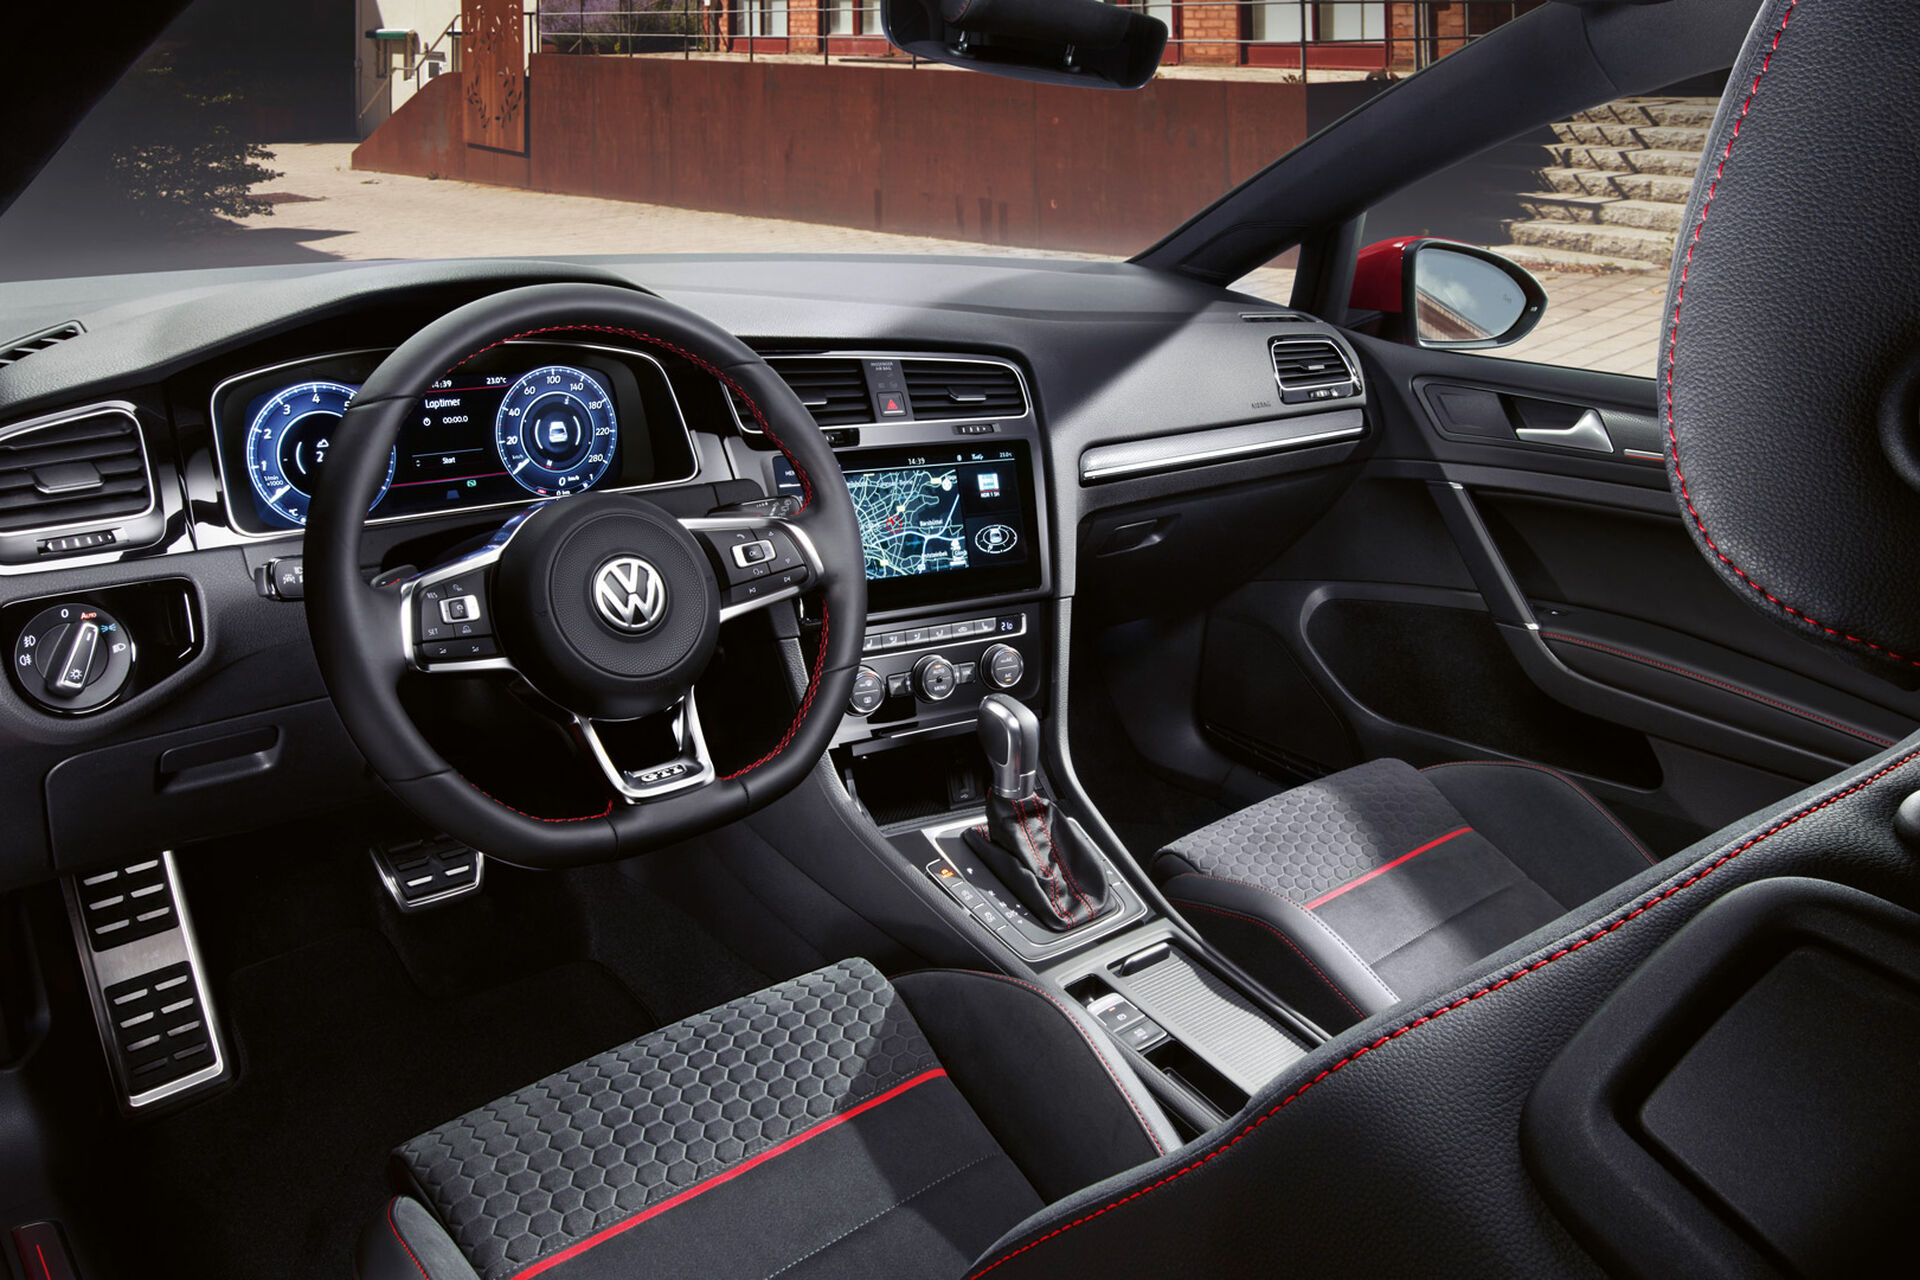 VW Golf GTI Interieri dhe kroskoti